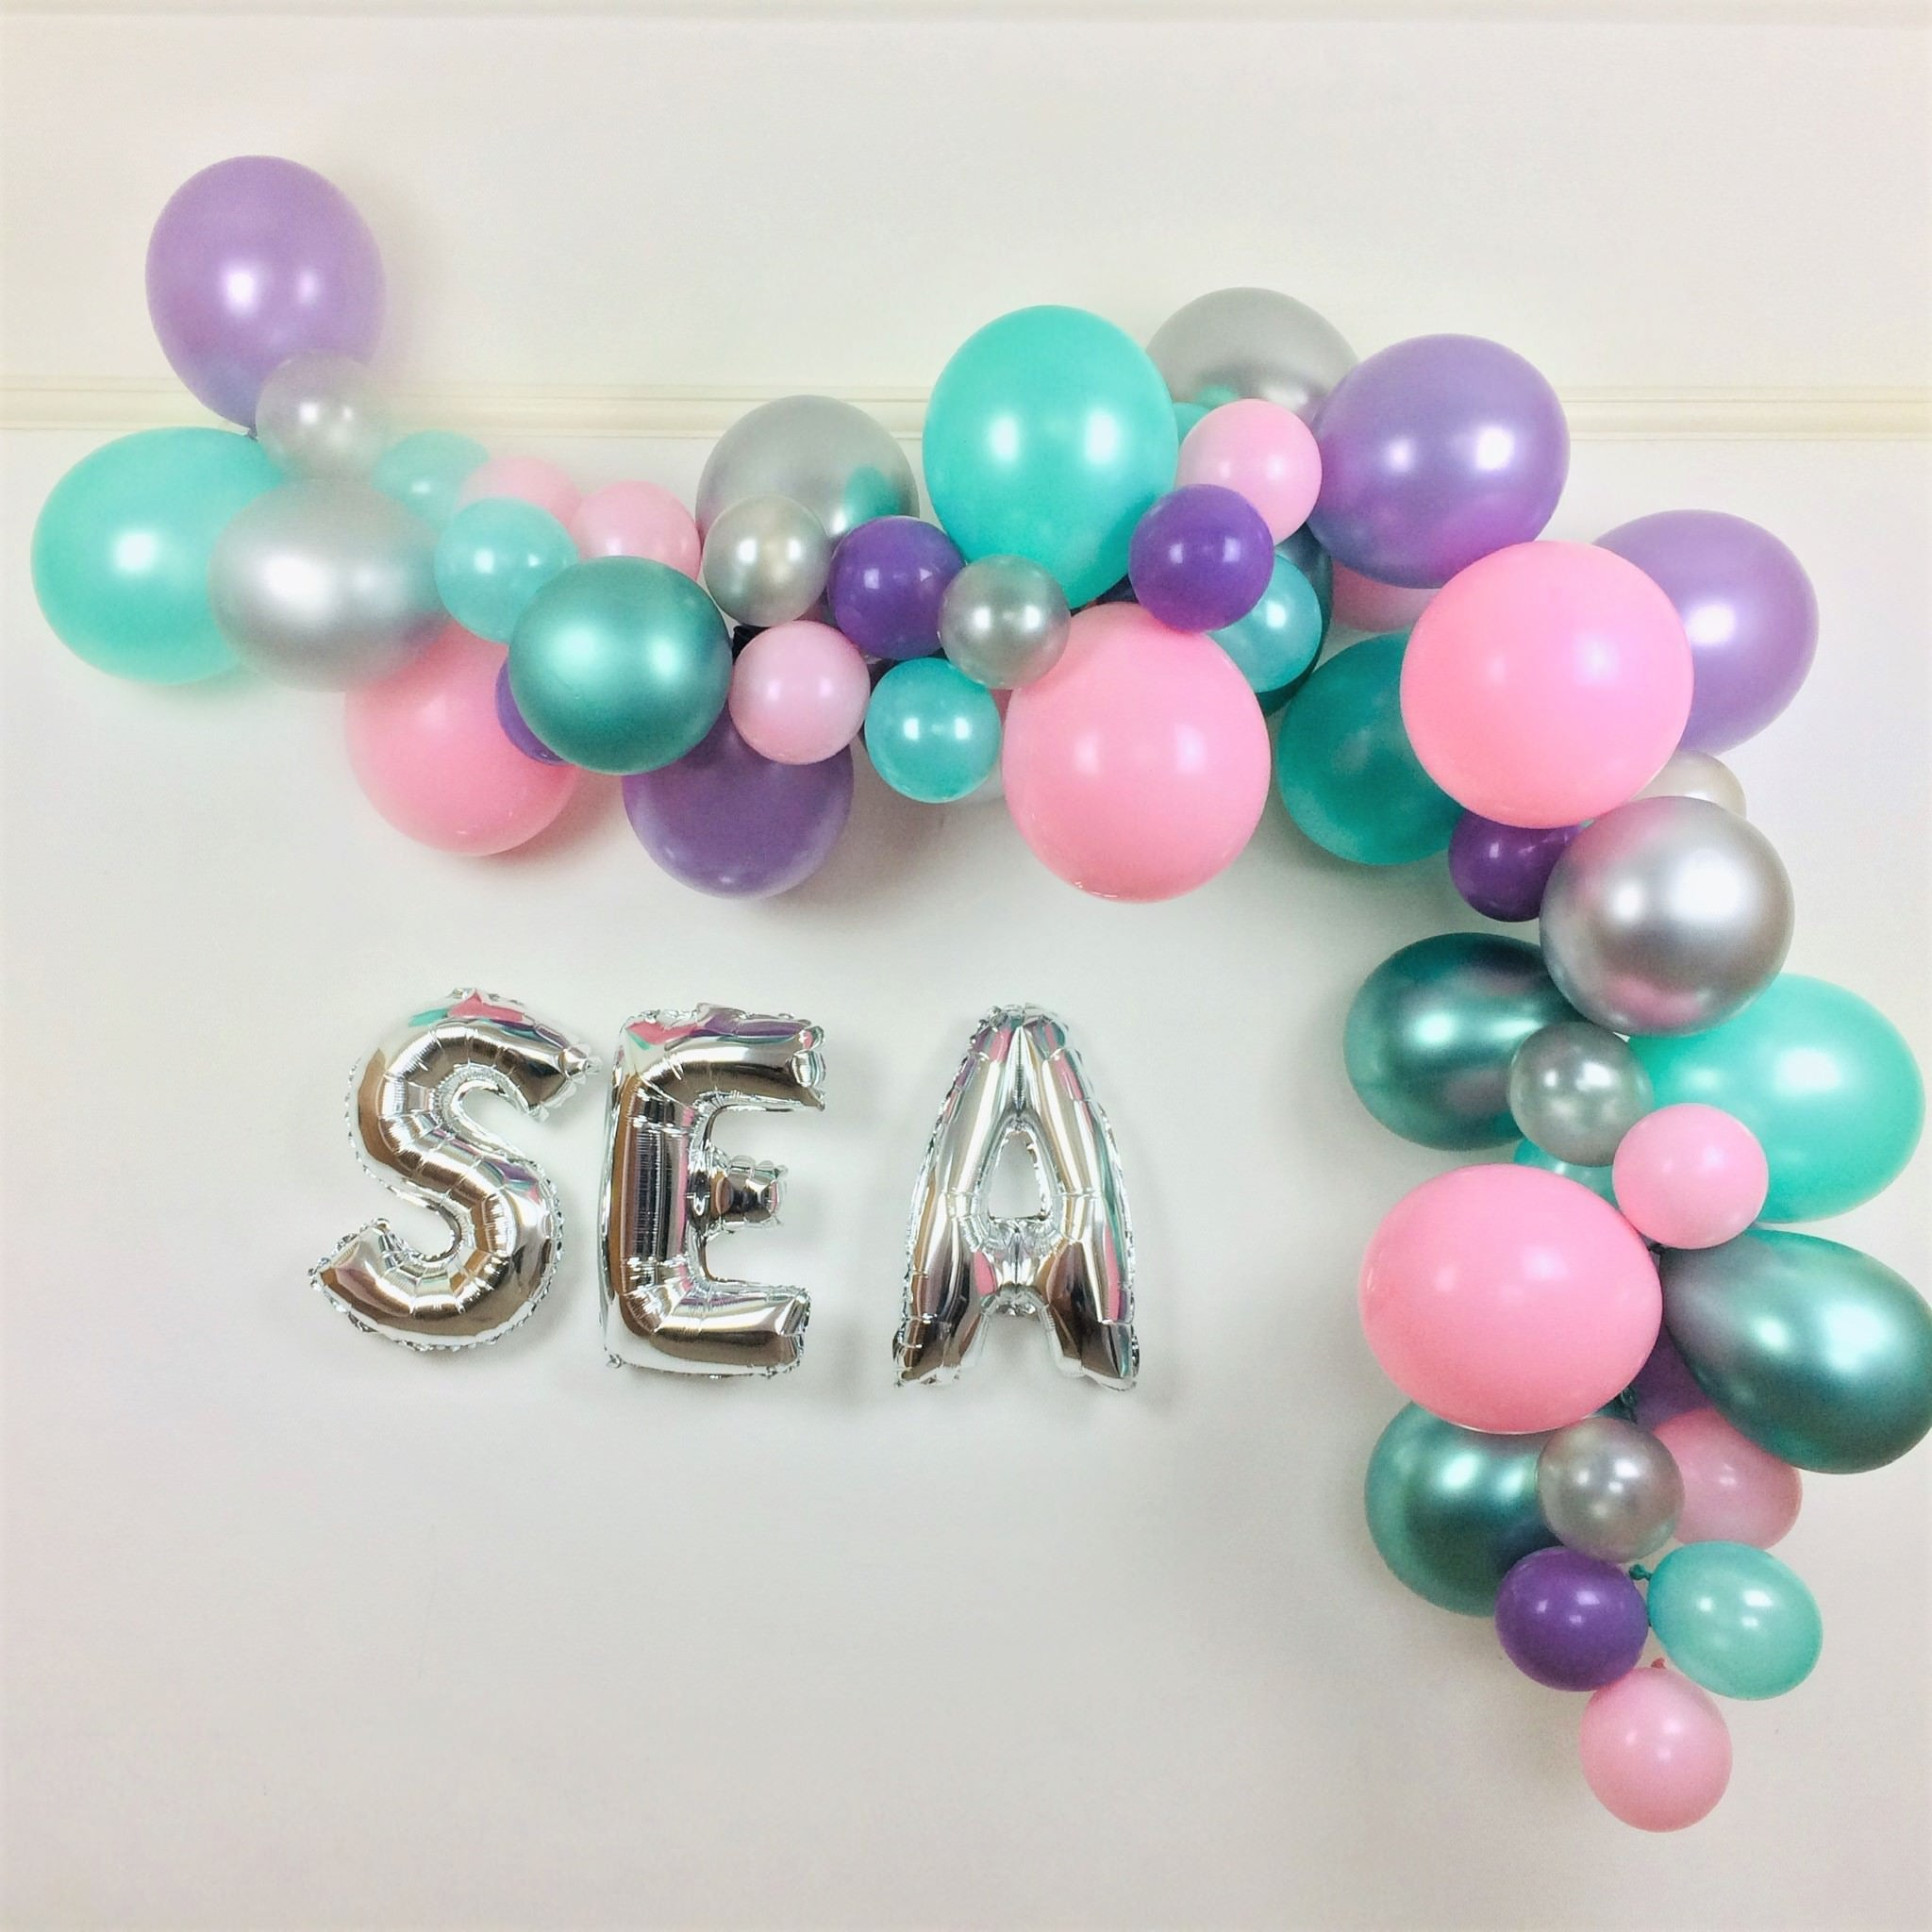 Mermaid Dreams Balloon Garland Cloud Kit I Under the Sea or Mermaid Party Decoration I My Dream Party Shop I UK